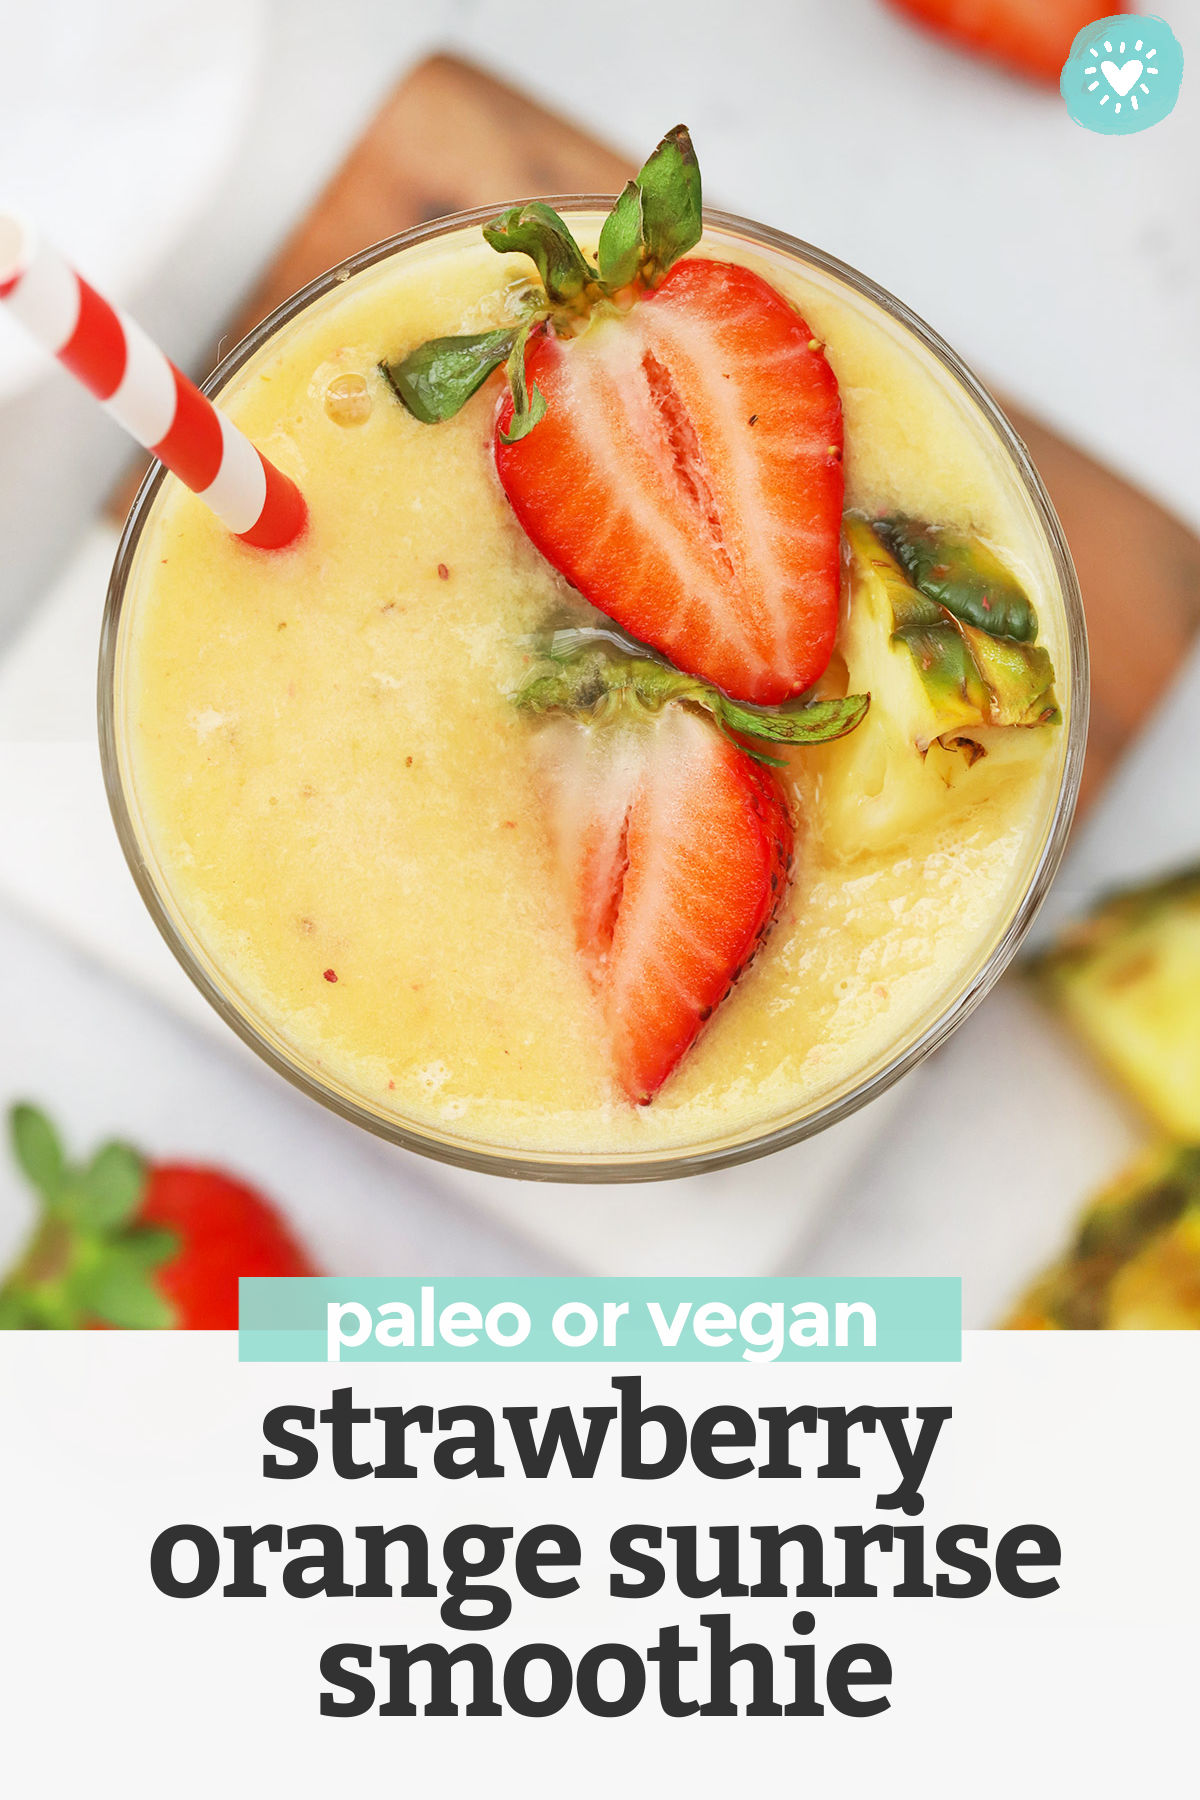 Strawberry Orange Sunrise Smoothie - This creamy strawberry mango pineapple smoothie has bright, fresh flavor that feels like taking your tastebuds on vacation! (Paleo or Vegan) // Strawberry Mango Smoothie // Strawberry Pineapple Smoothie // Strawberry Orange Smoothie // Healthy smoothie // healthy snack #paleo #vegan #smoothie